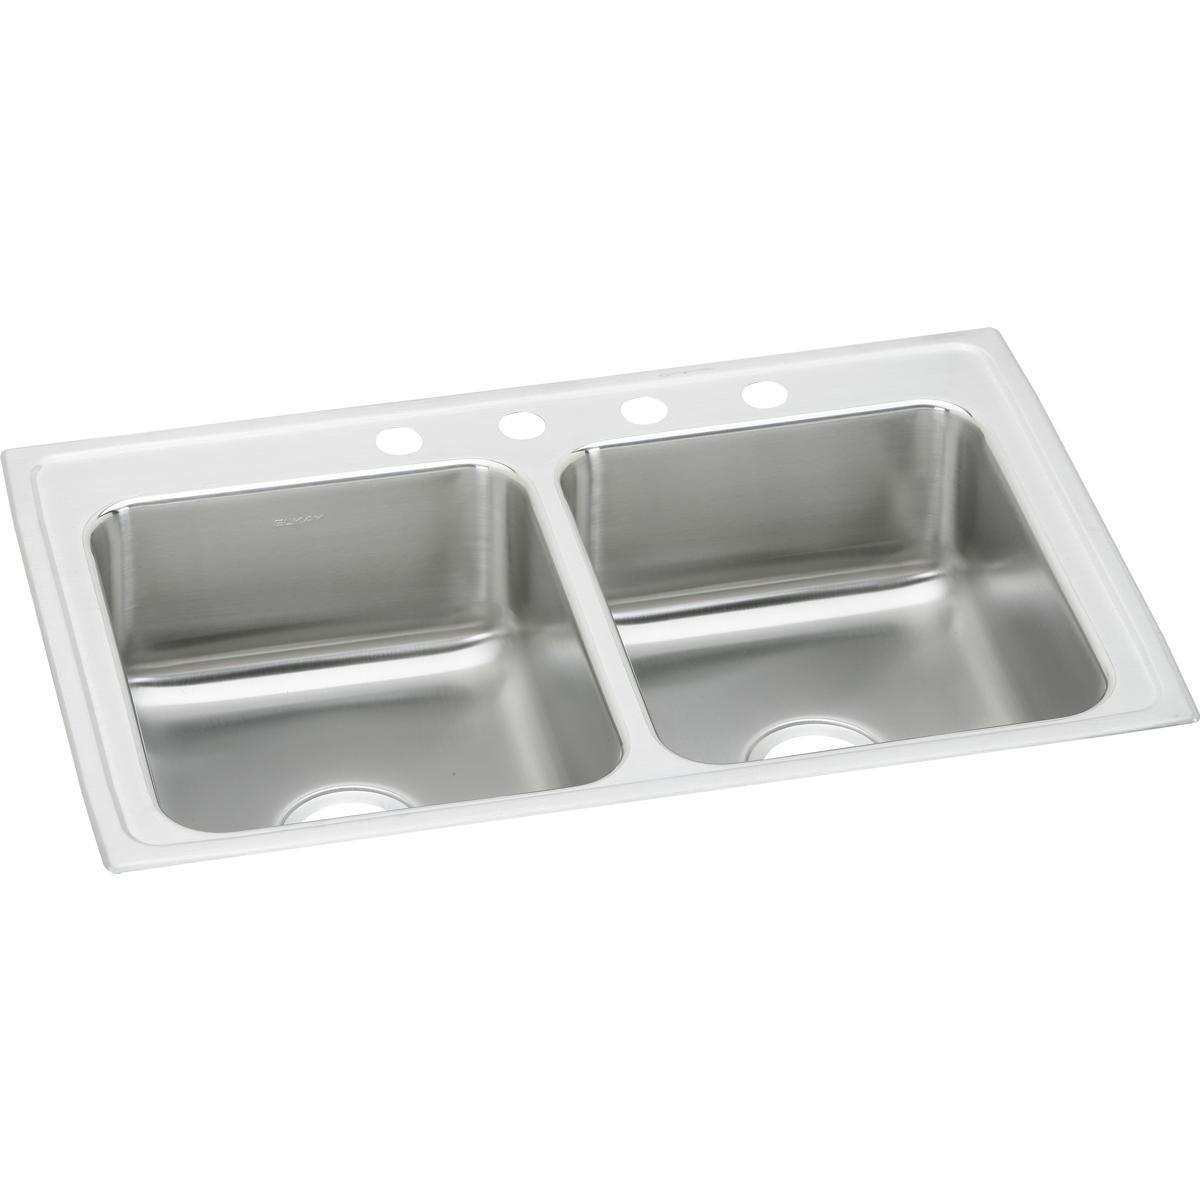 "Elkay Lustertone Classic Stainless Steel 29"" x 18"" x 6-1/2"", Equal Double Bowl Drop-in ADA Sink"